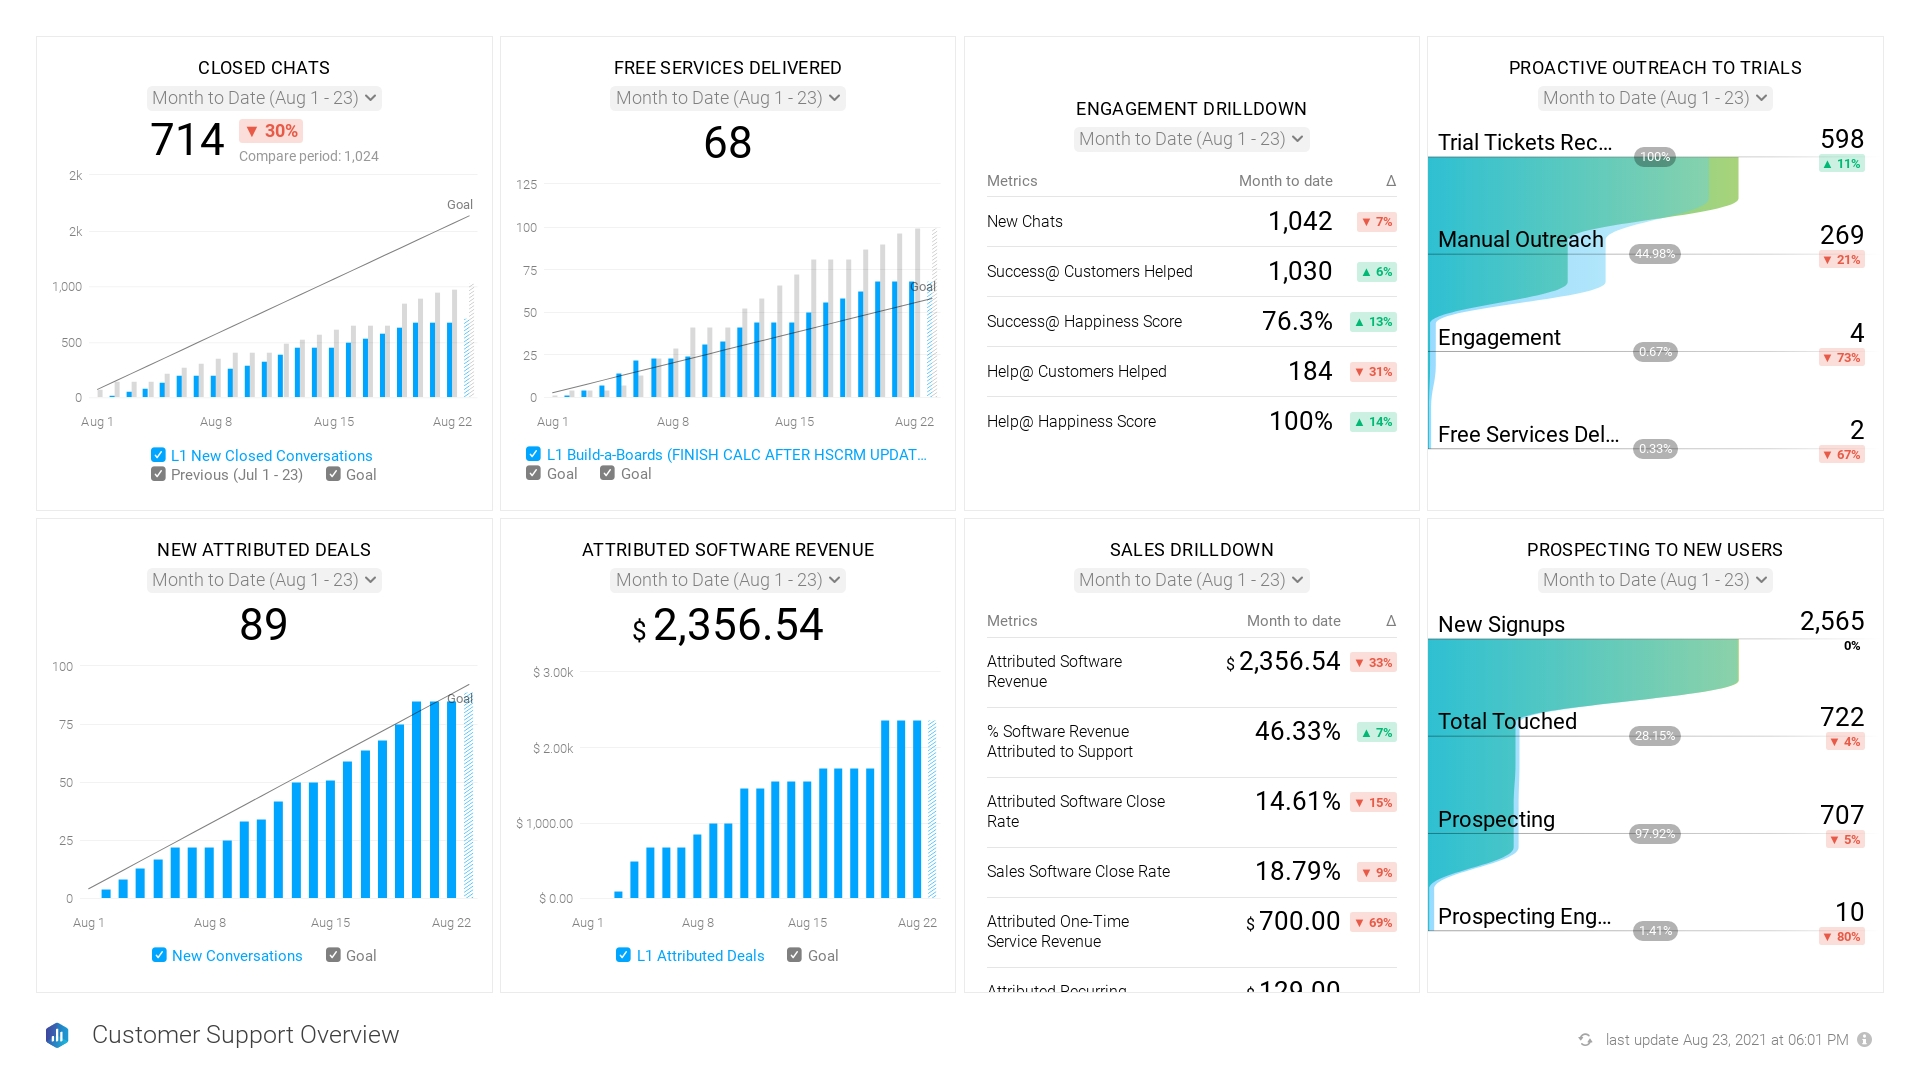 SaaS Customer Support Team - Performance Overview